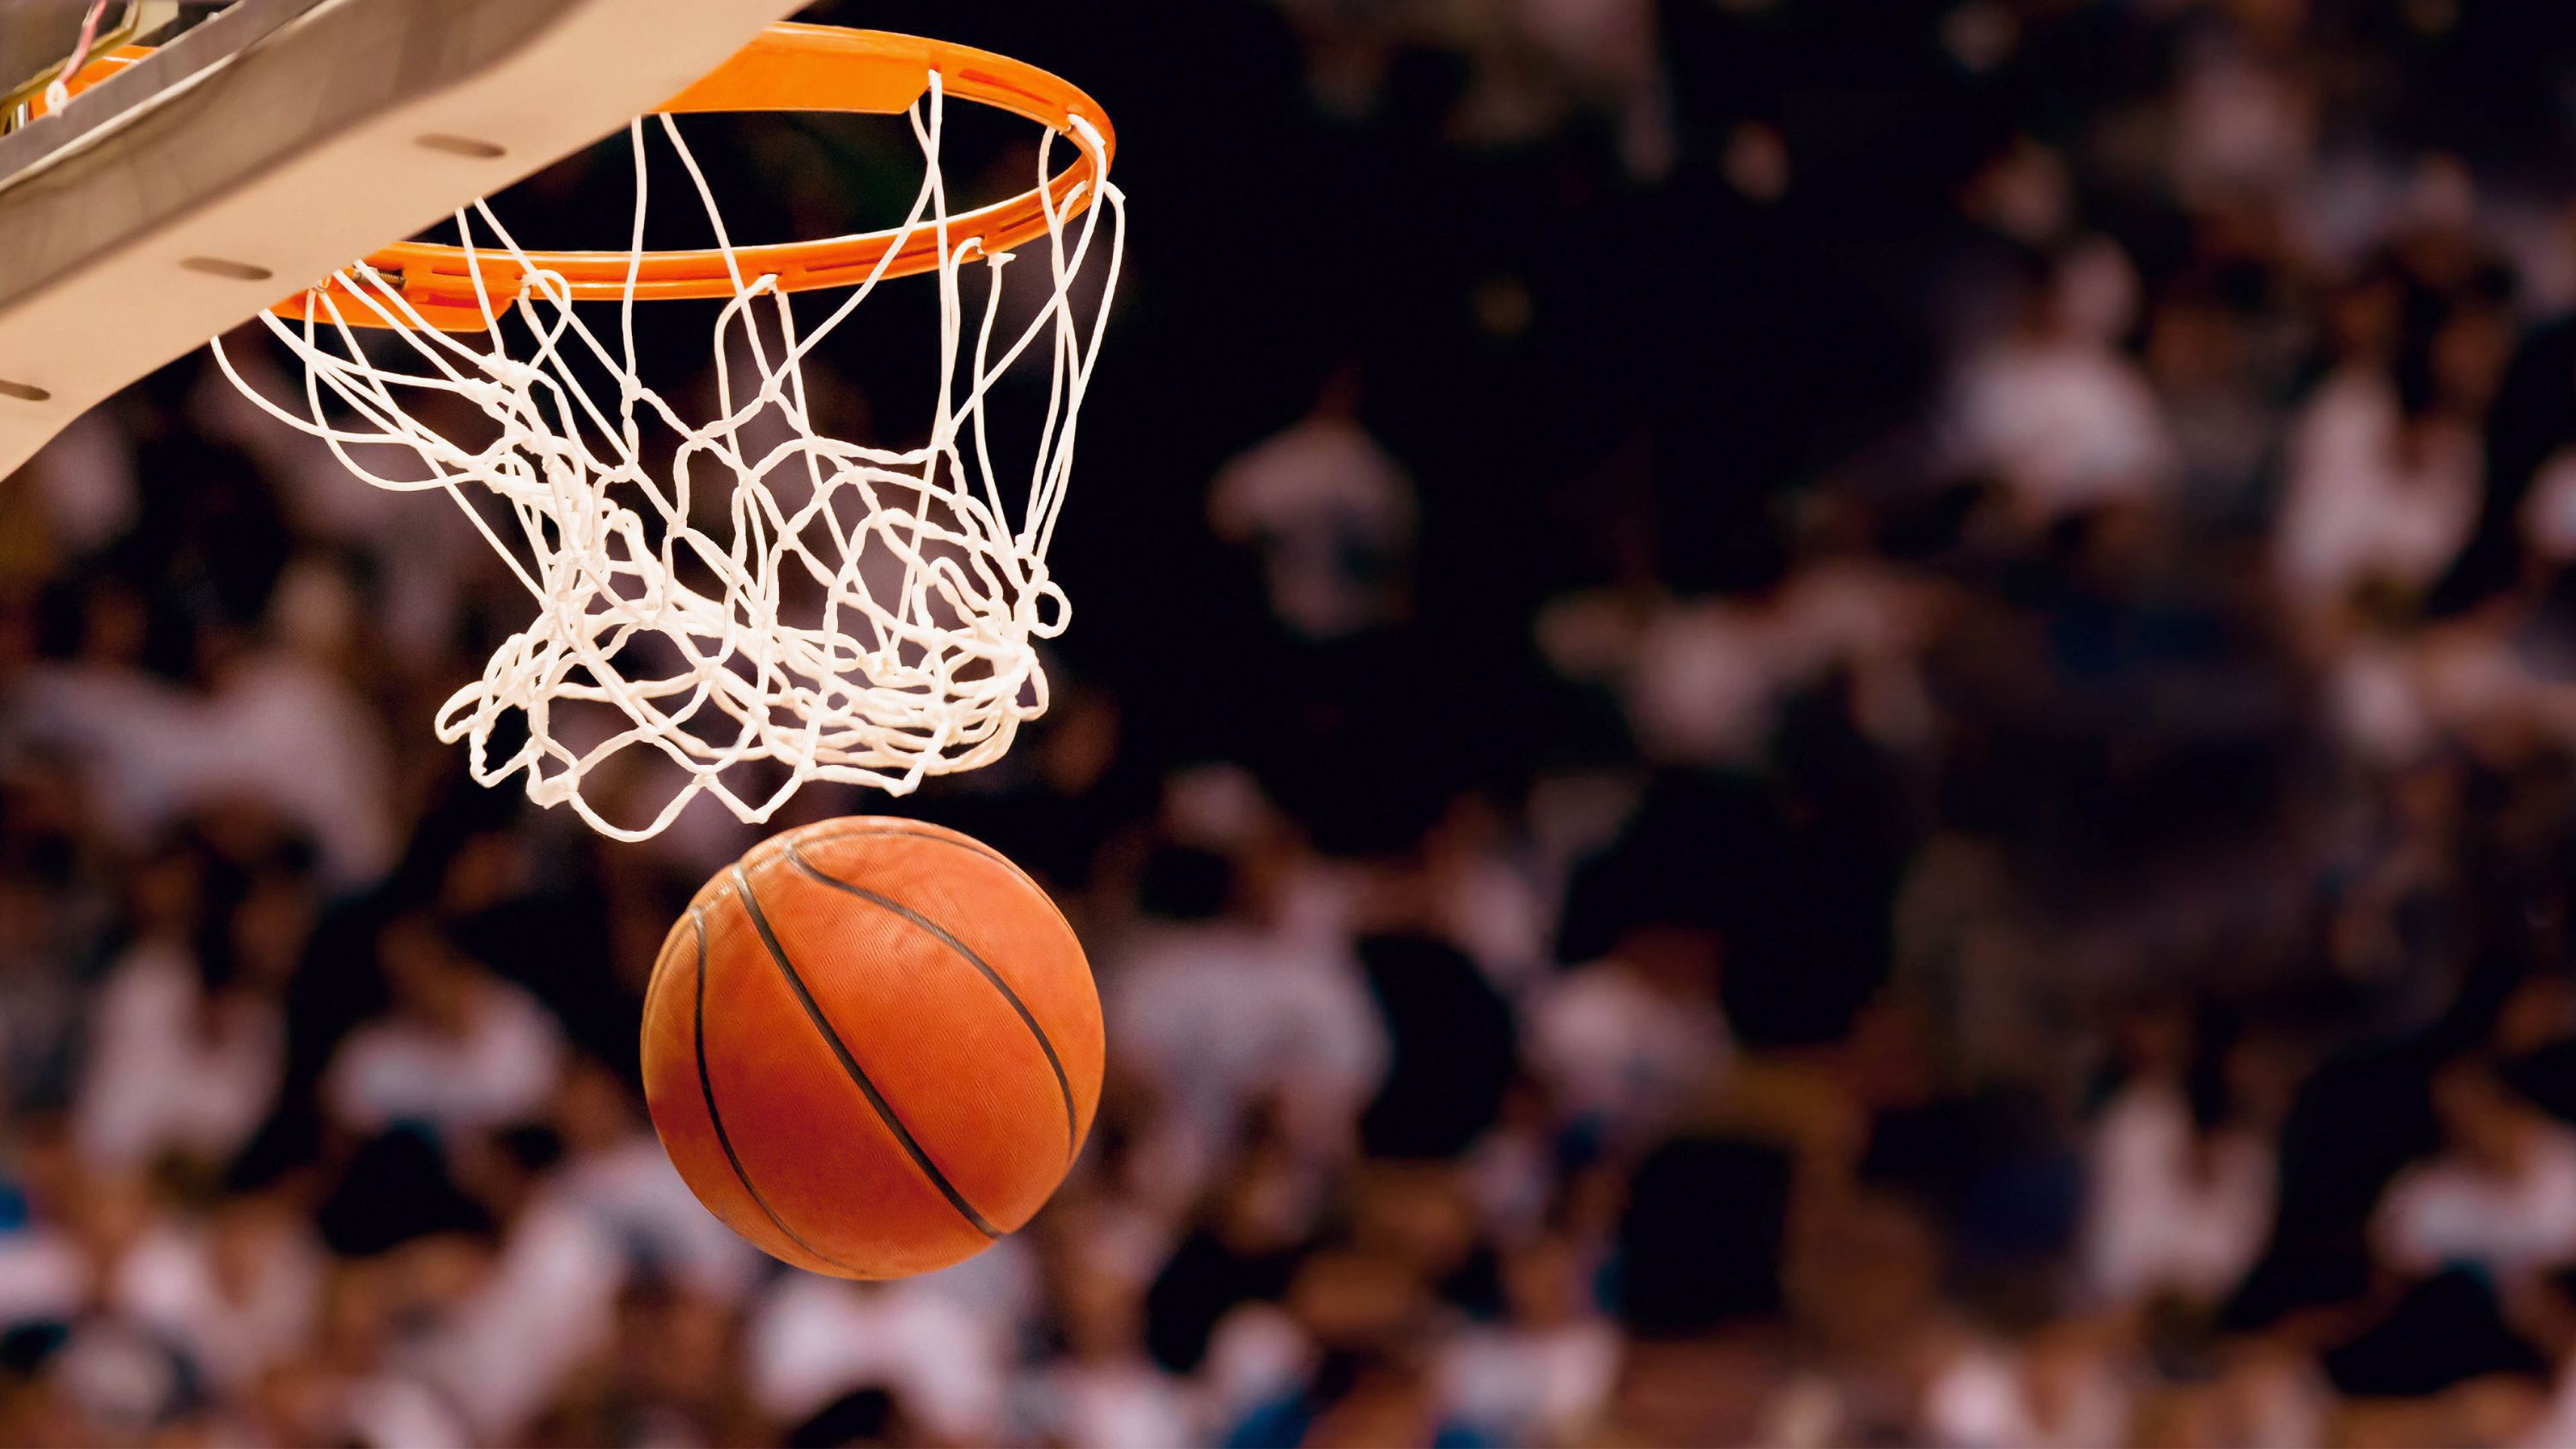 Basketball High Definition Wallpapers